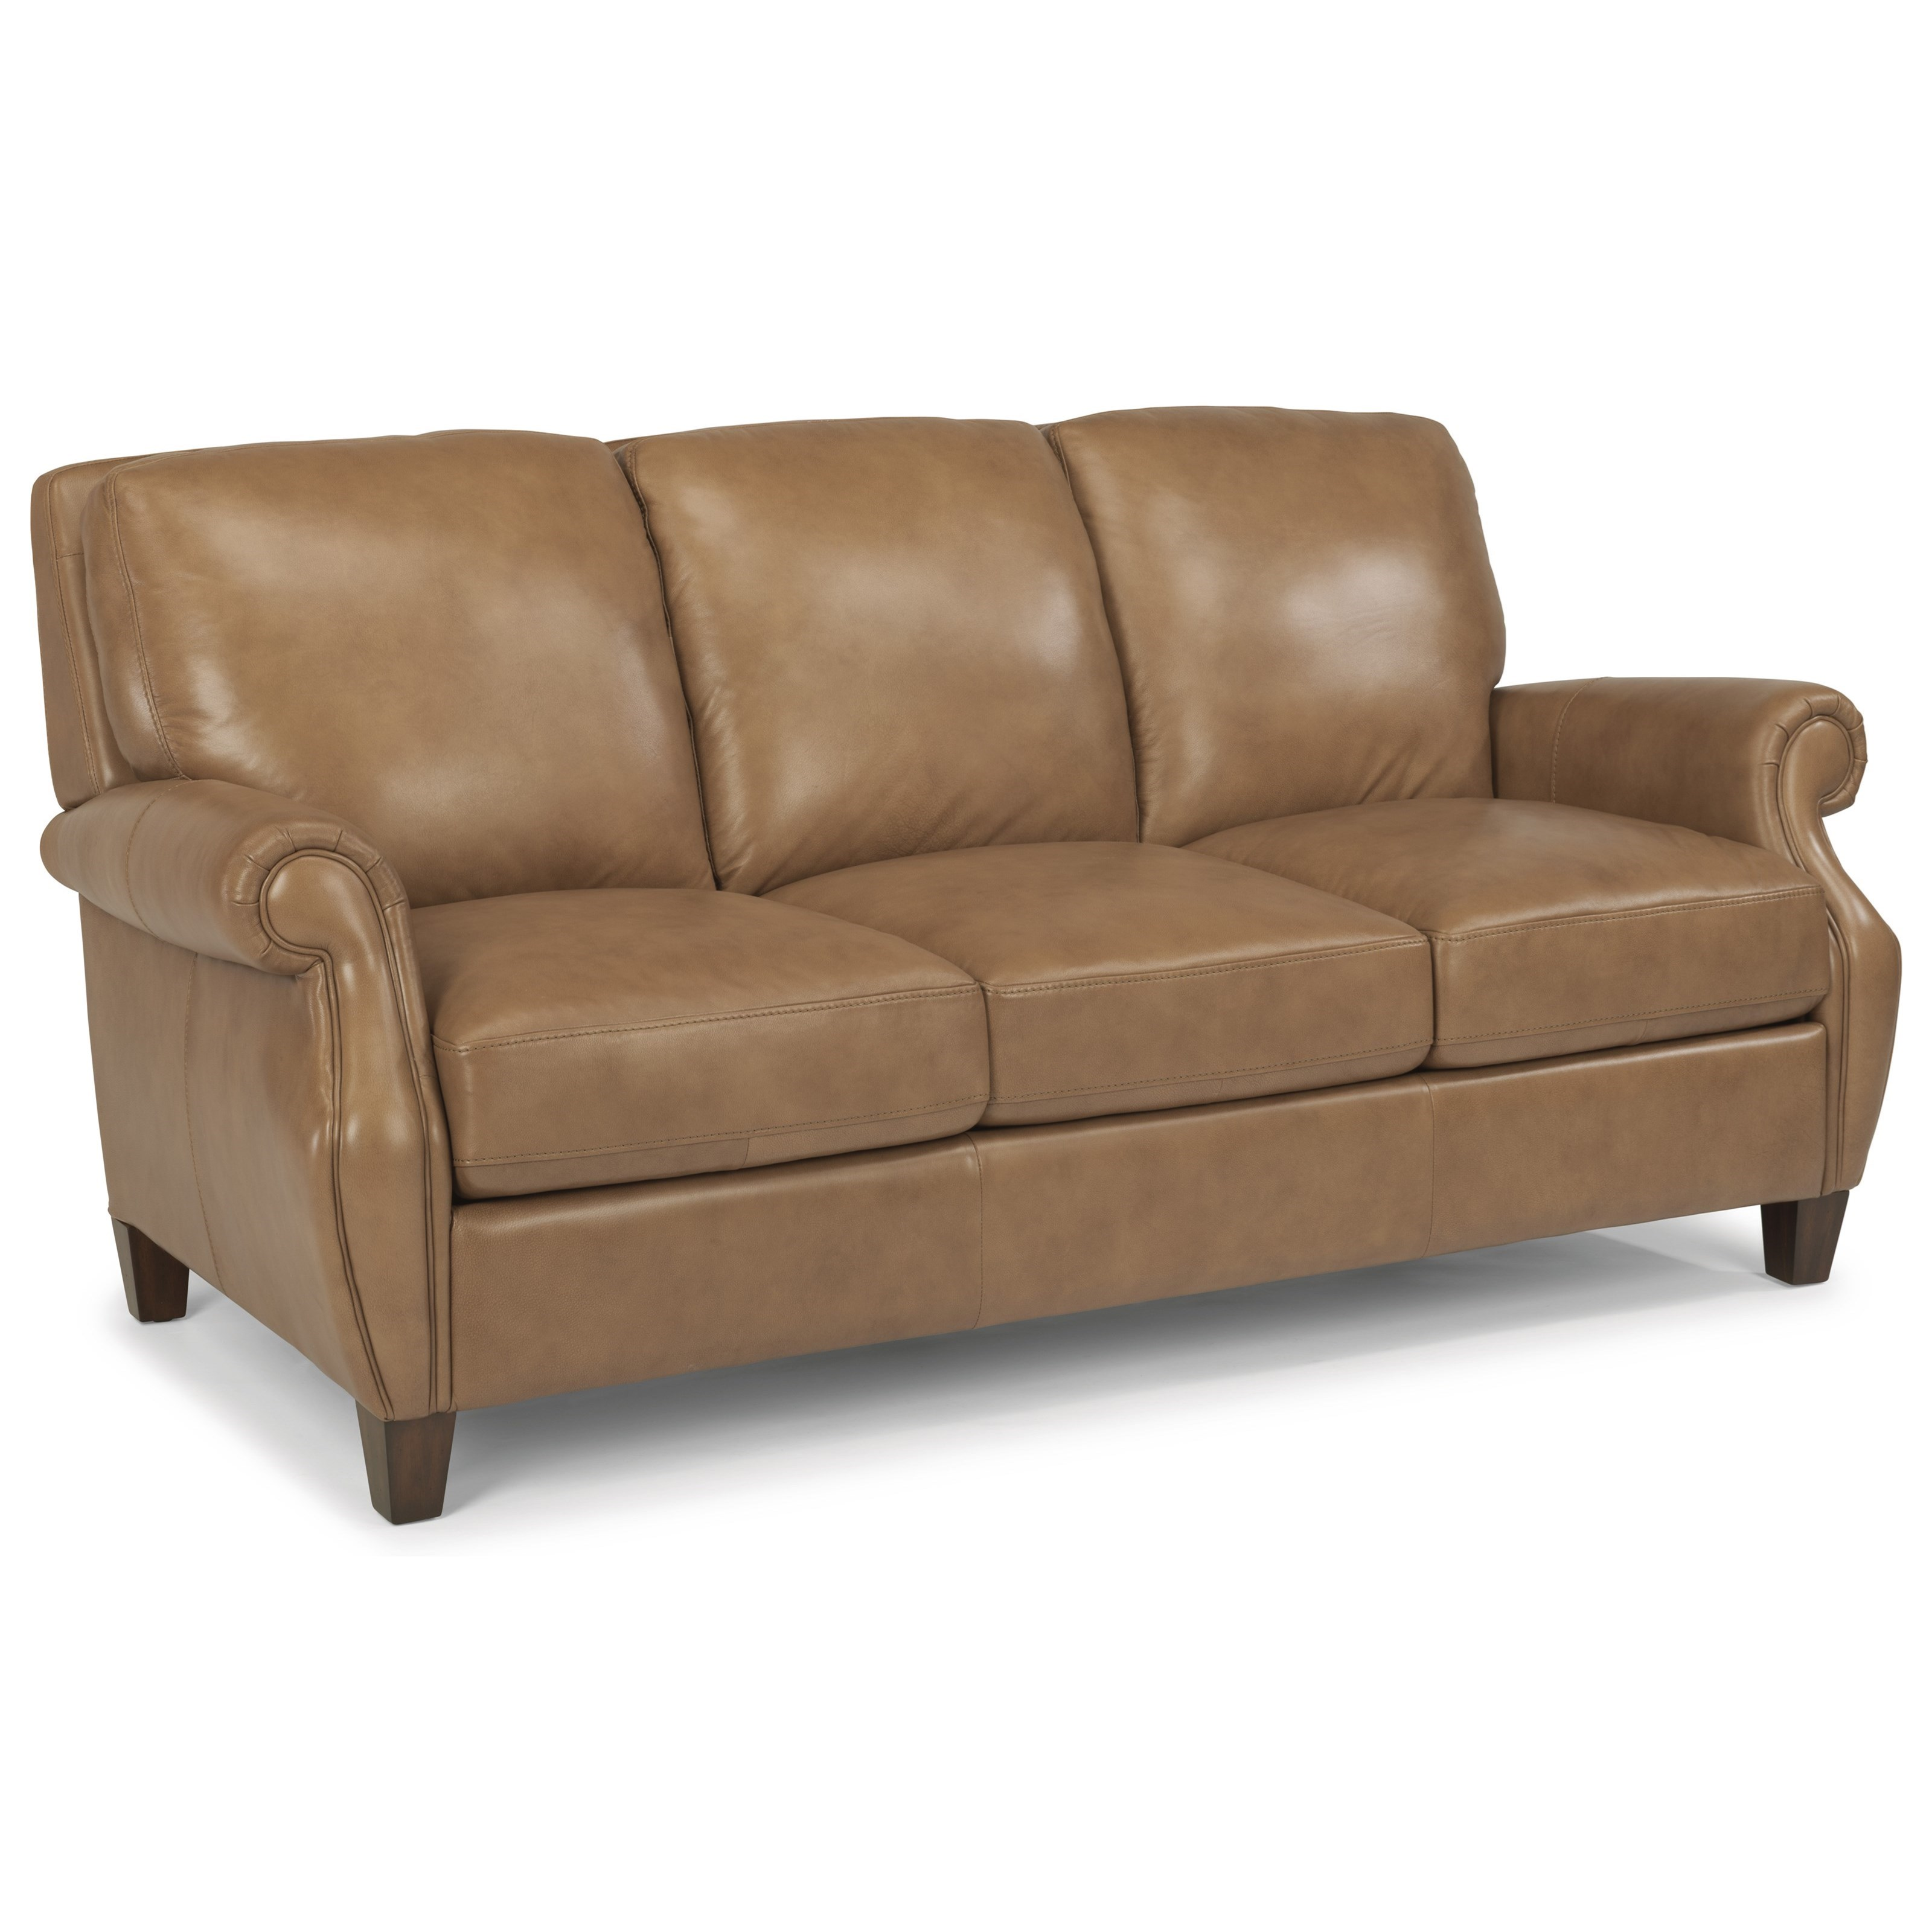 Flexsteel Latitudes-Exton Sofa  - Item Number: 1383-31